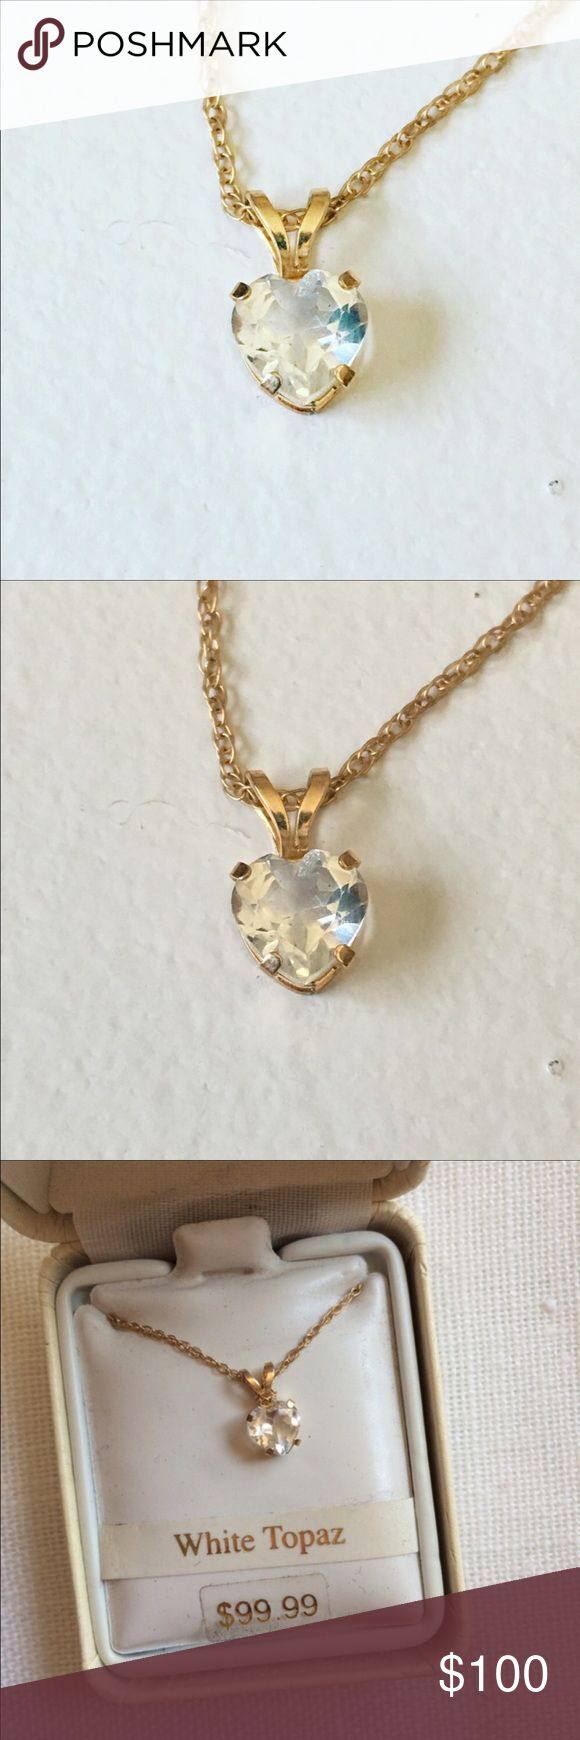 "NWT 10K Gold Filled White Topaz Necklace Heart Brand new in box. 18"" chain. 10K gold filled. White topaz heart-shaped pendant. Jewelry Necklaces"